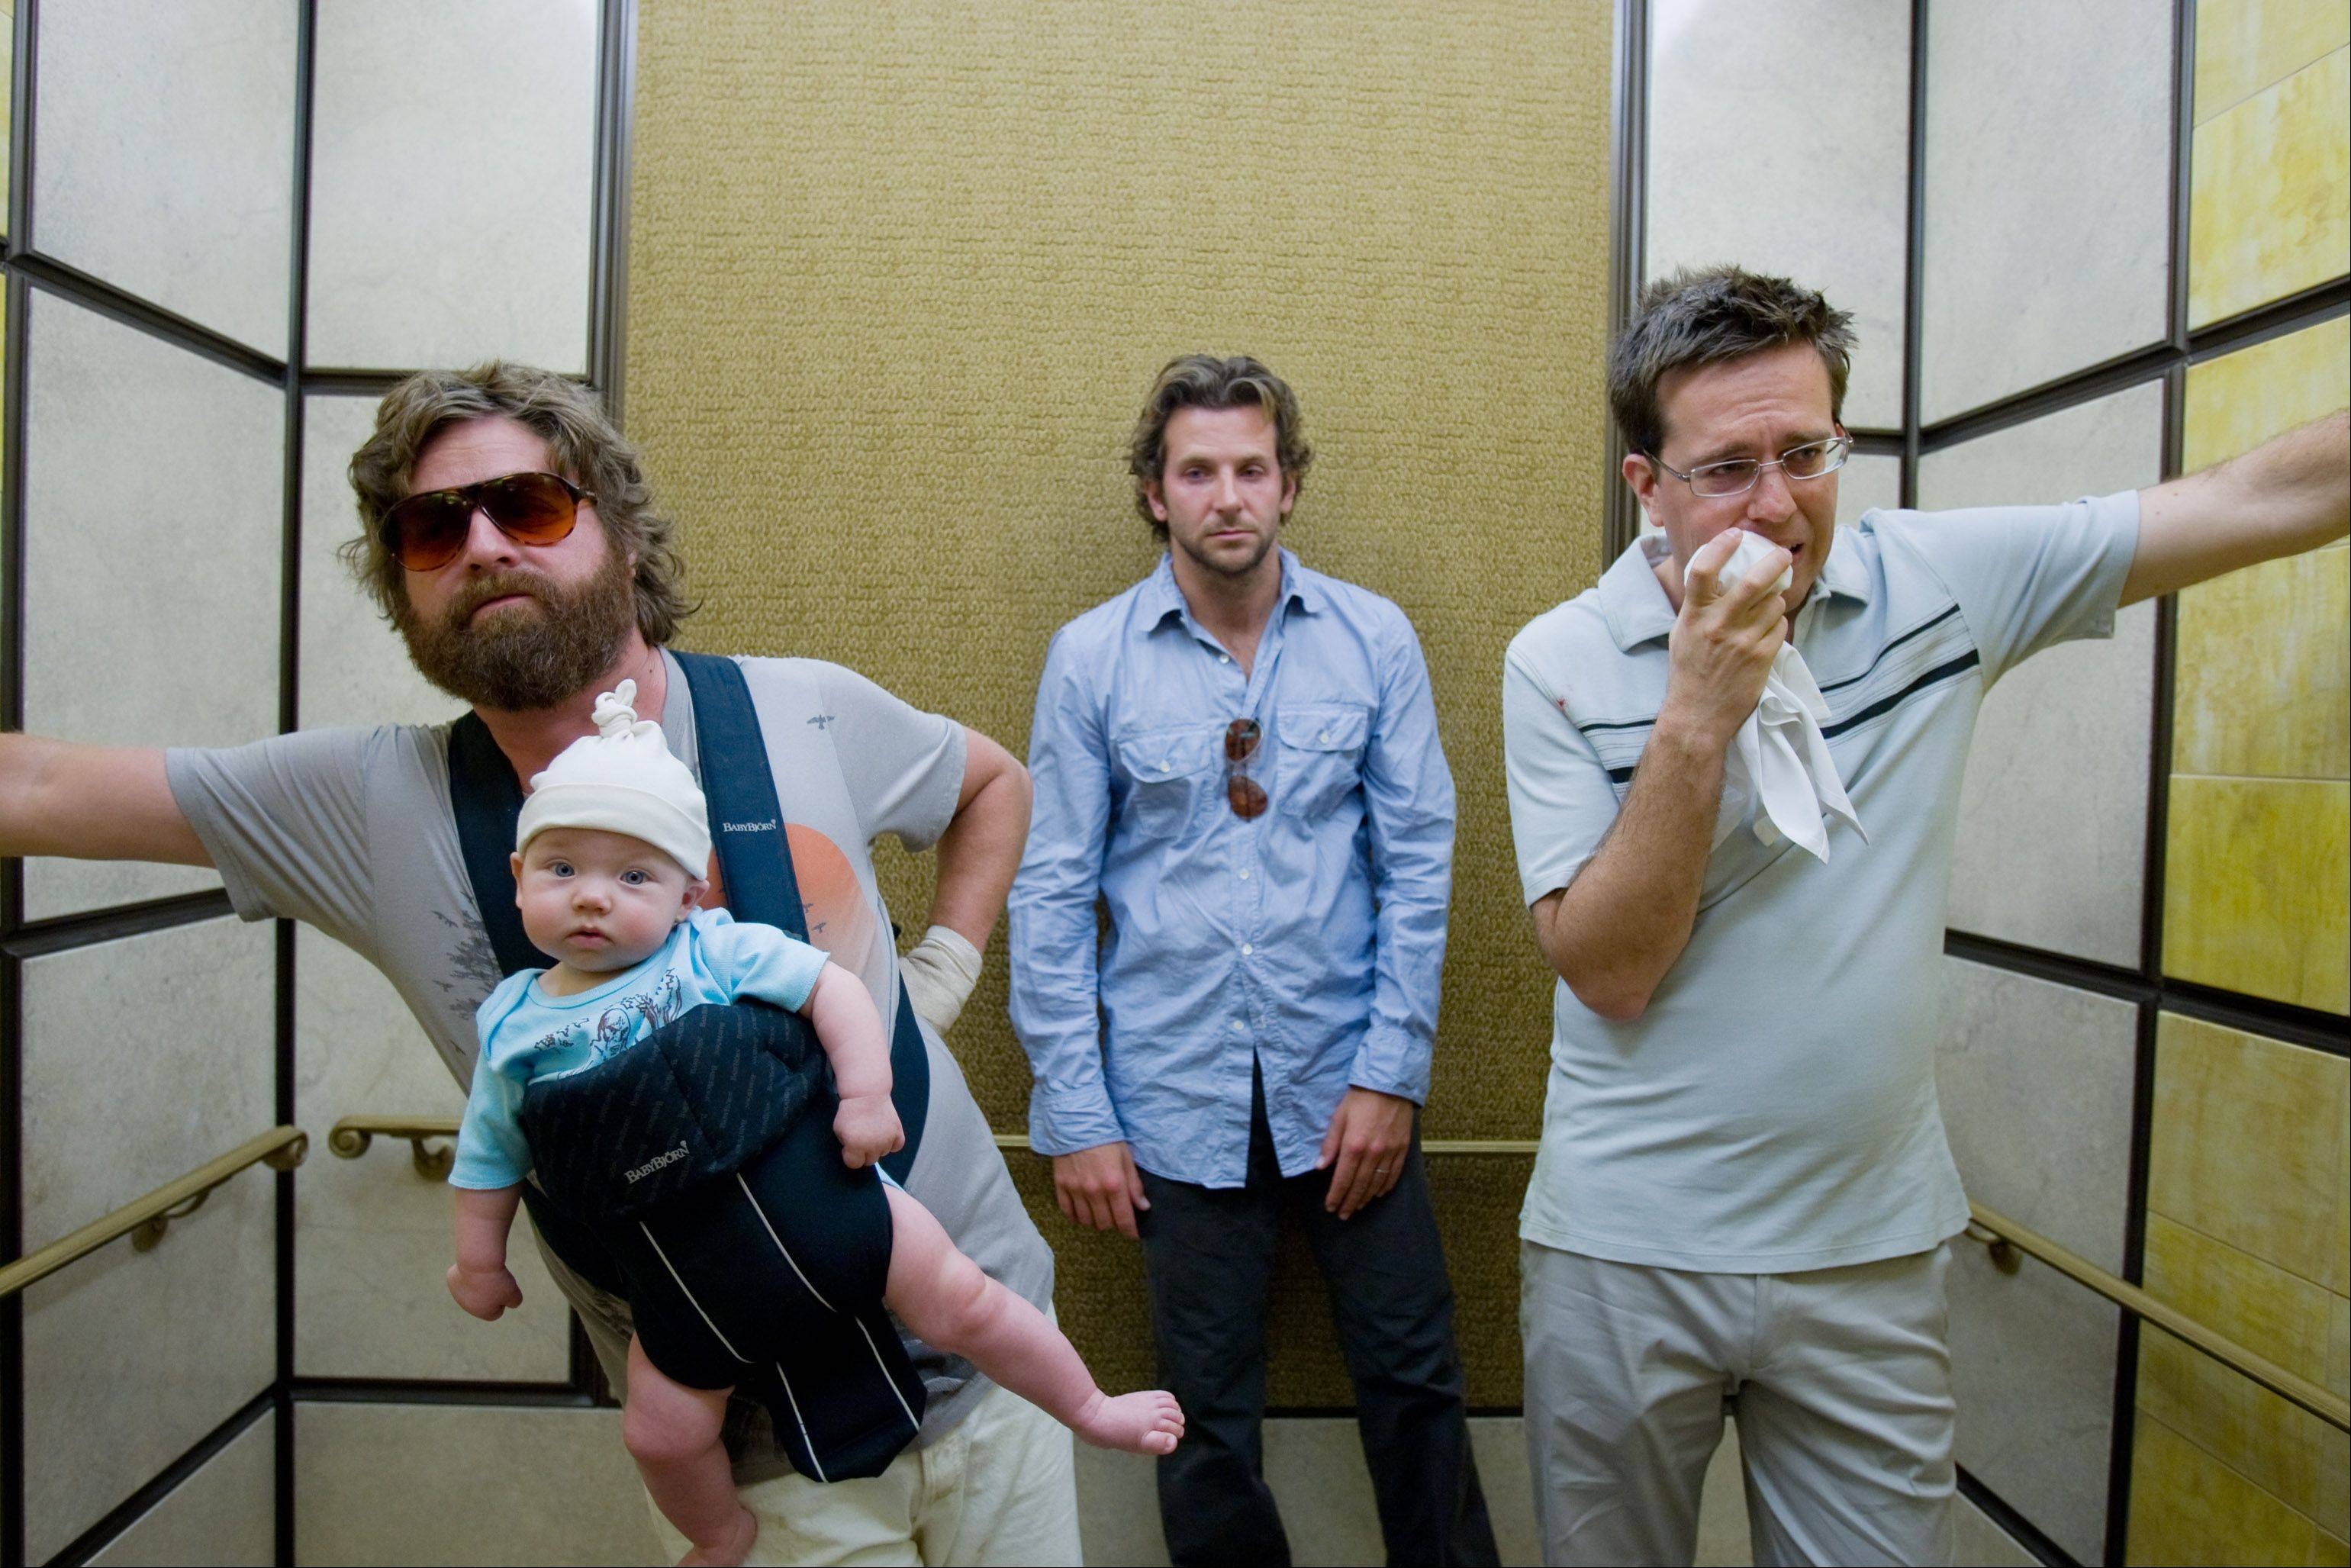 """The Hangover"" is one of 20 comedies featured in a new DVD collection."